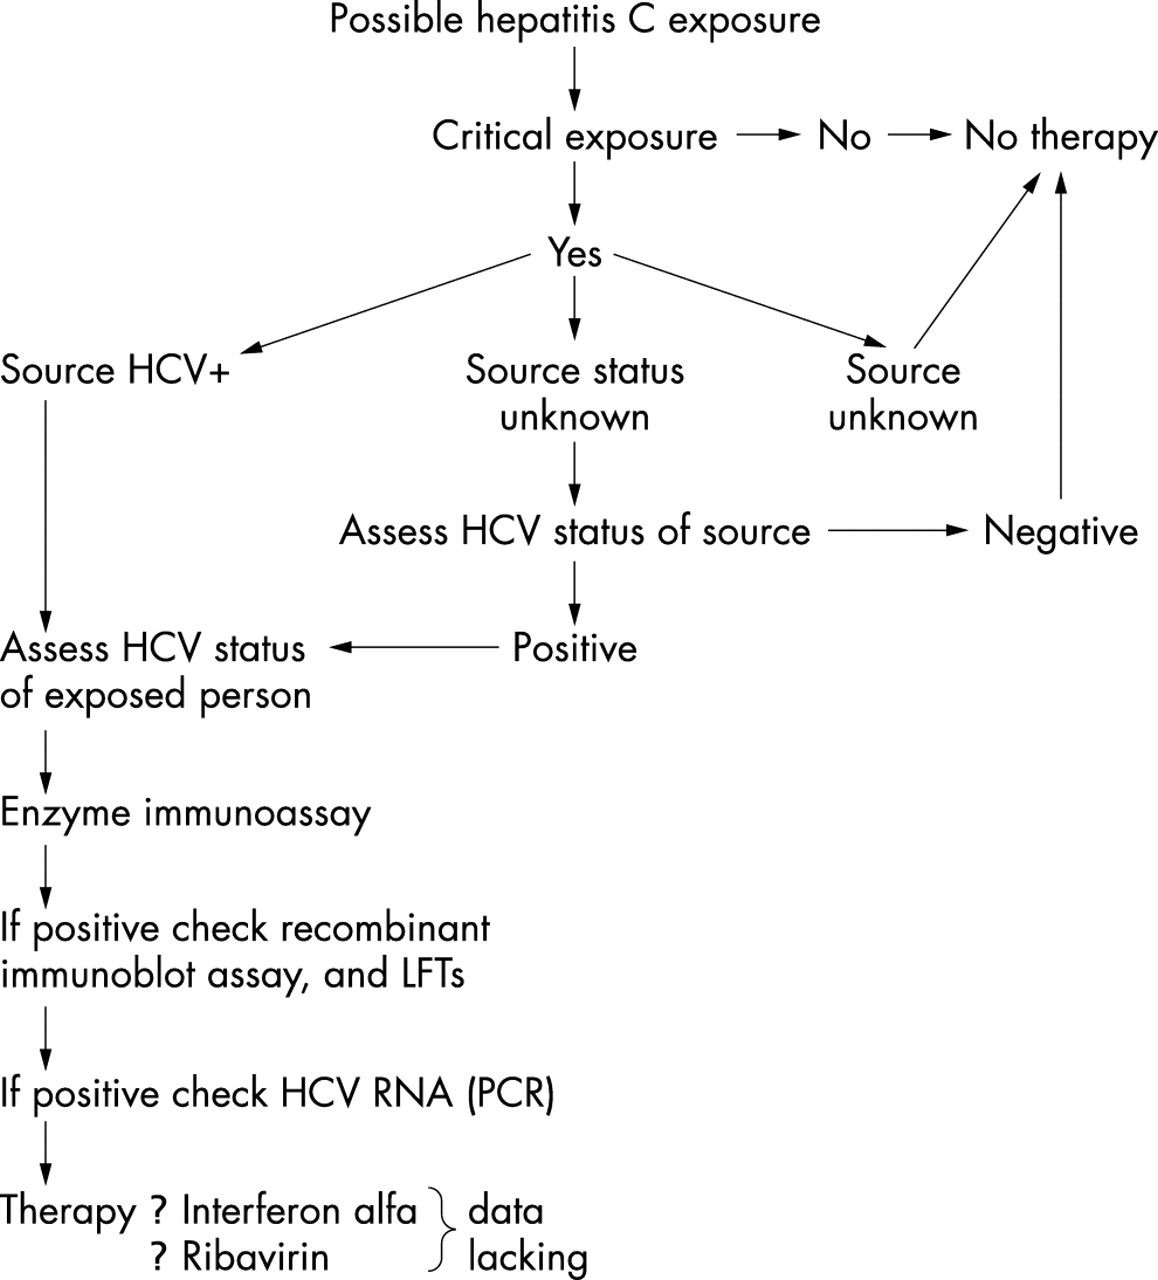 Post-exposure prophylaxis for blood borne viral infections